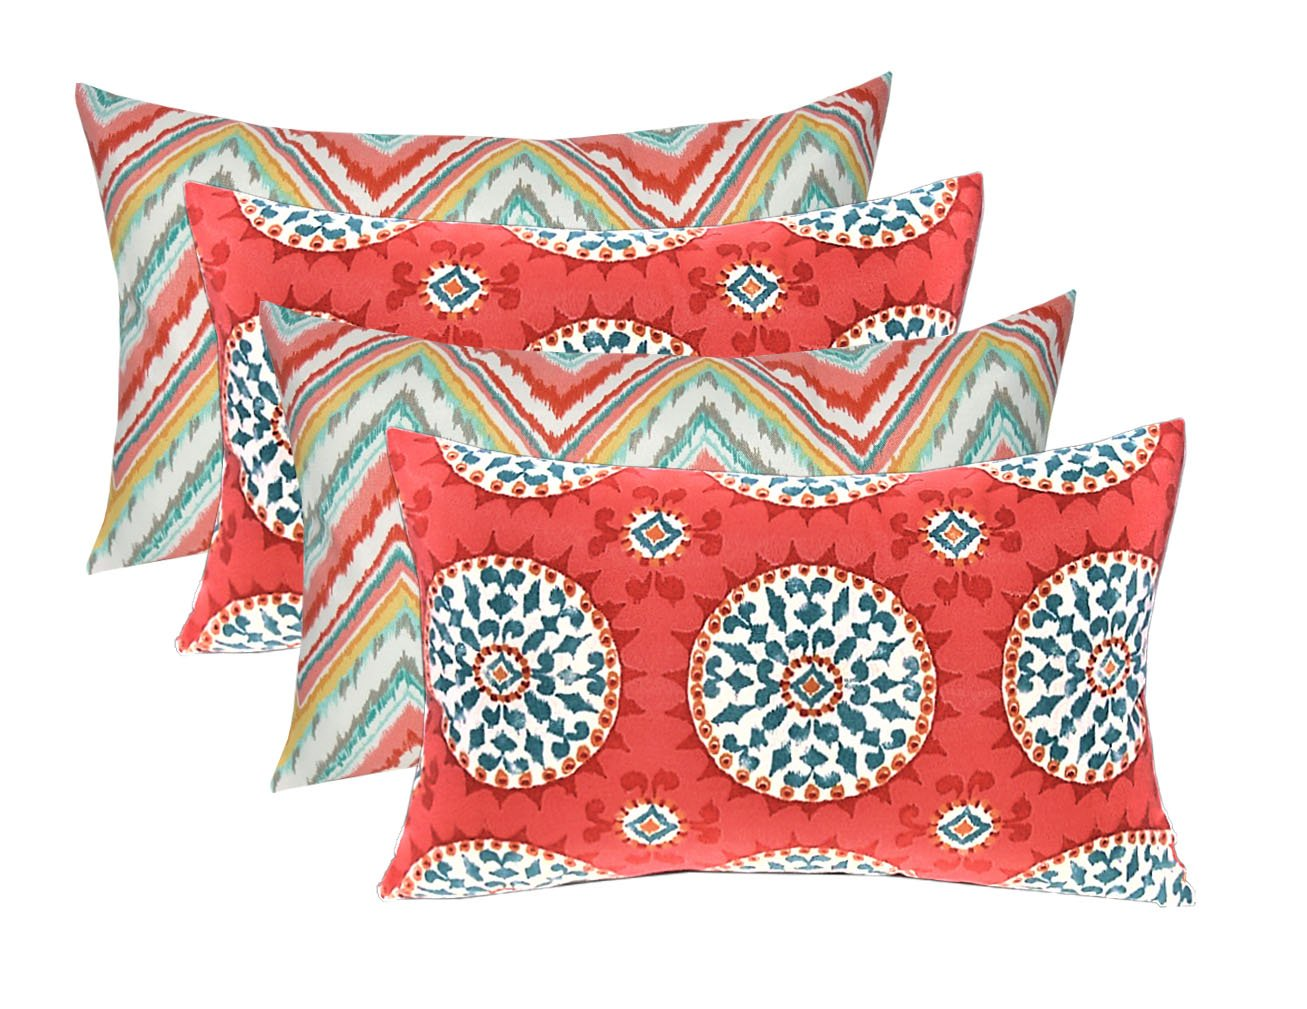 Resort Spa Home Decor Set of 4 Indoor Outdoor Decorative Lumbar Rectangle Pillows – 2 Bright Colorful Watermelon Chevron 2 Coral Turquoise Sundial